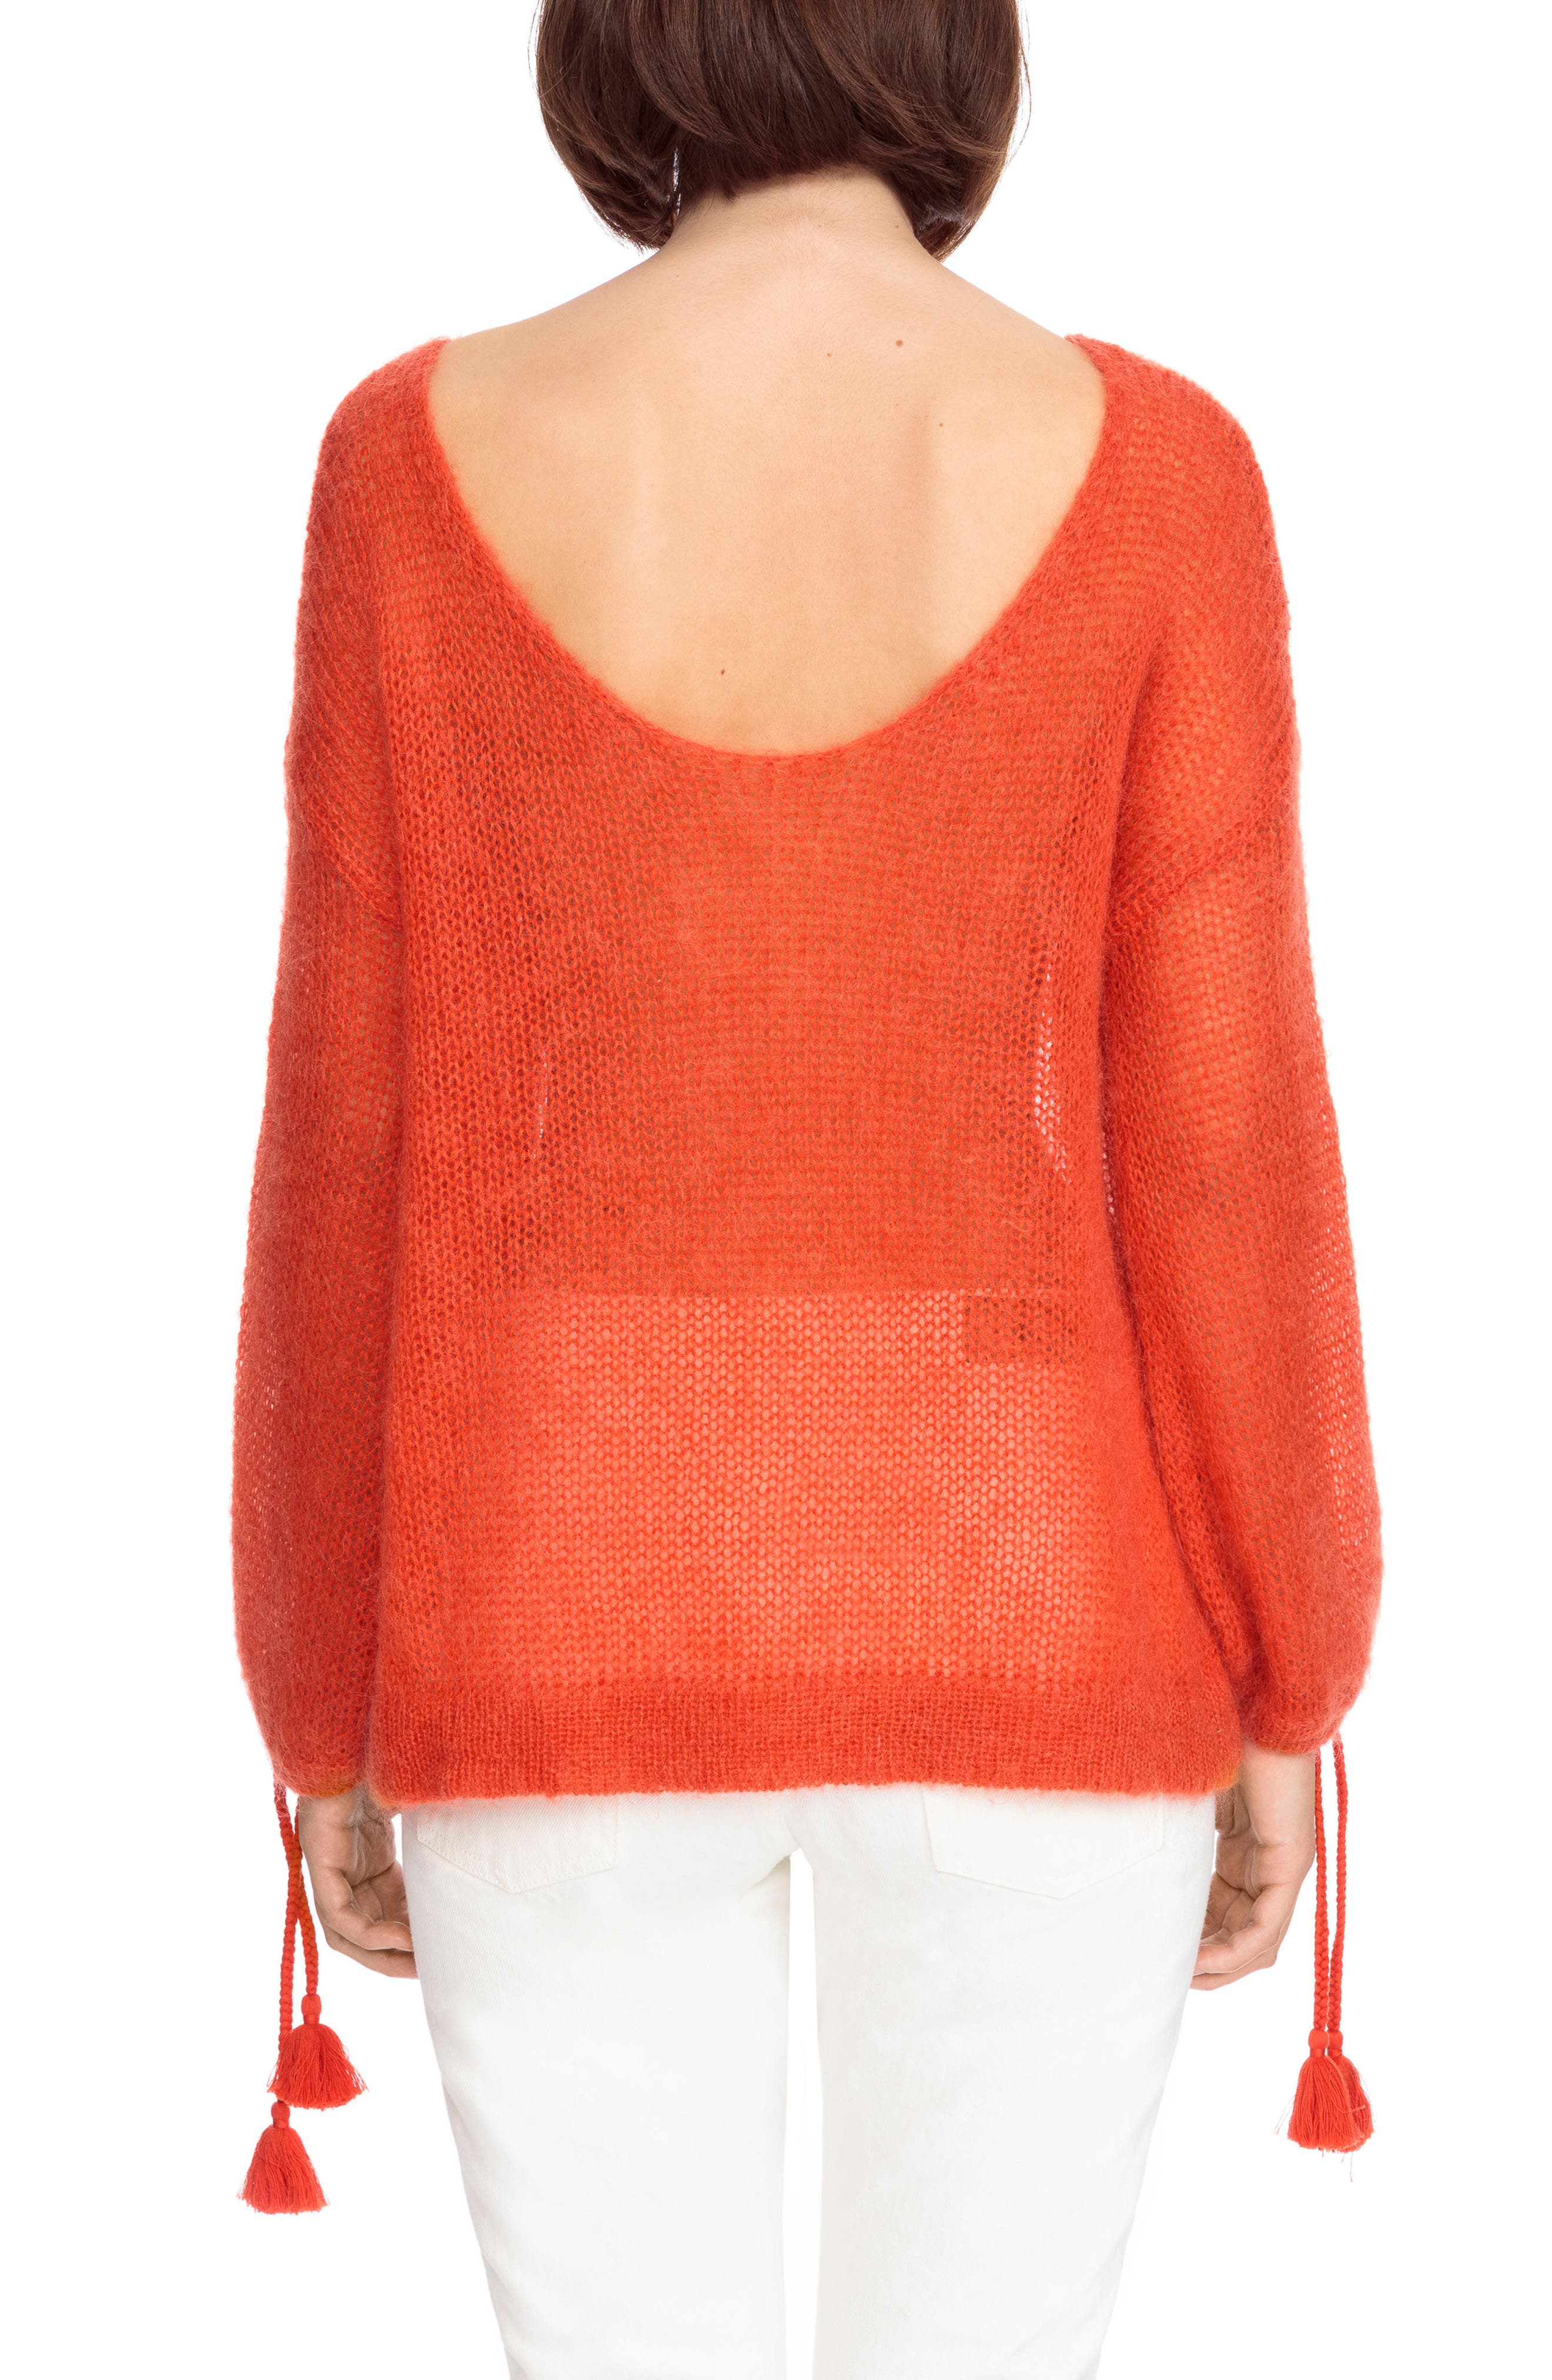 Dicky Tie Cuff Sweater,                             Alternate thumbnail 2, color,                             700